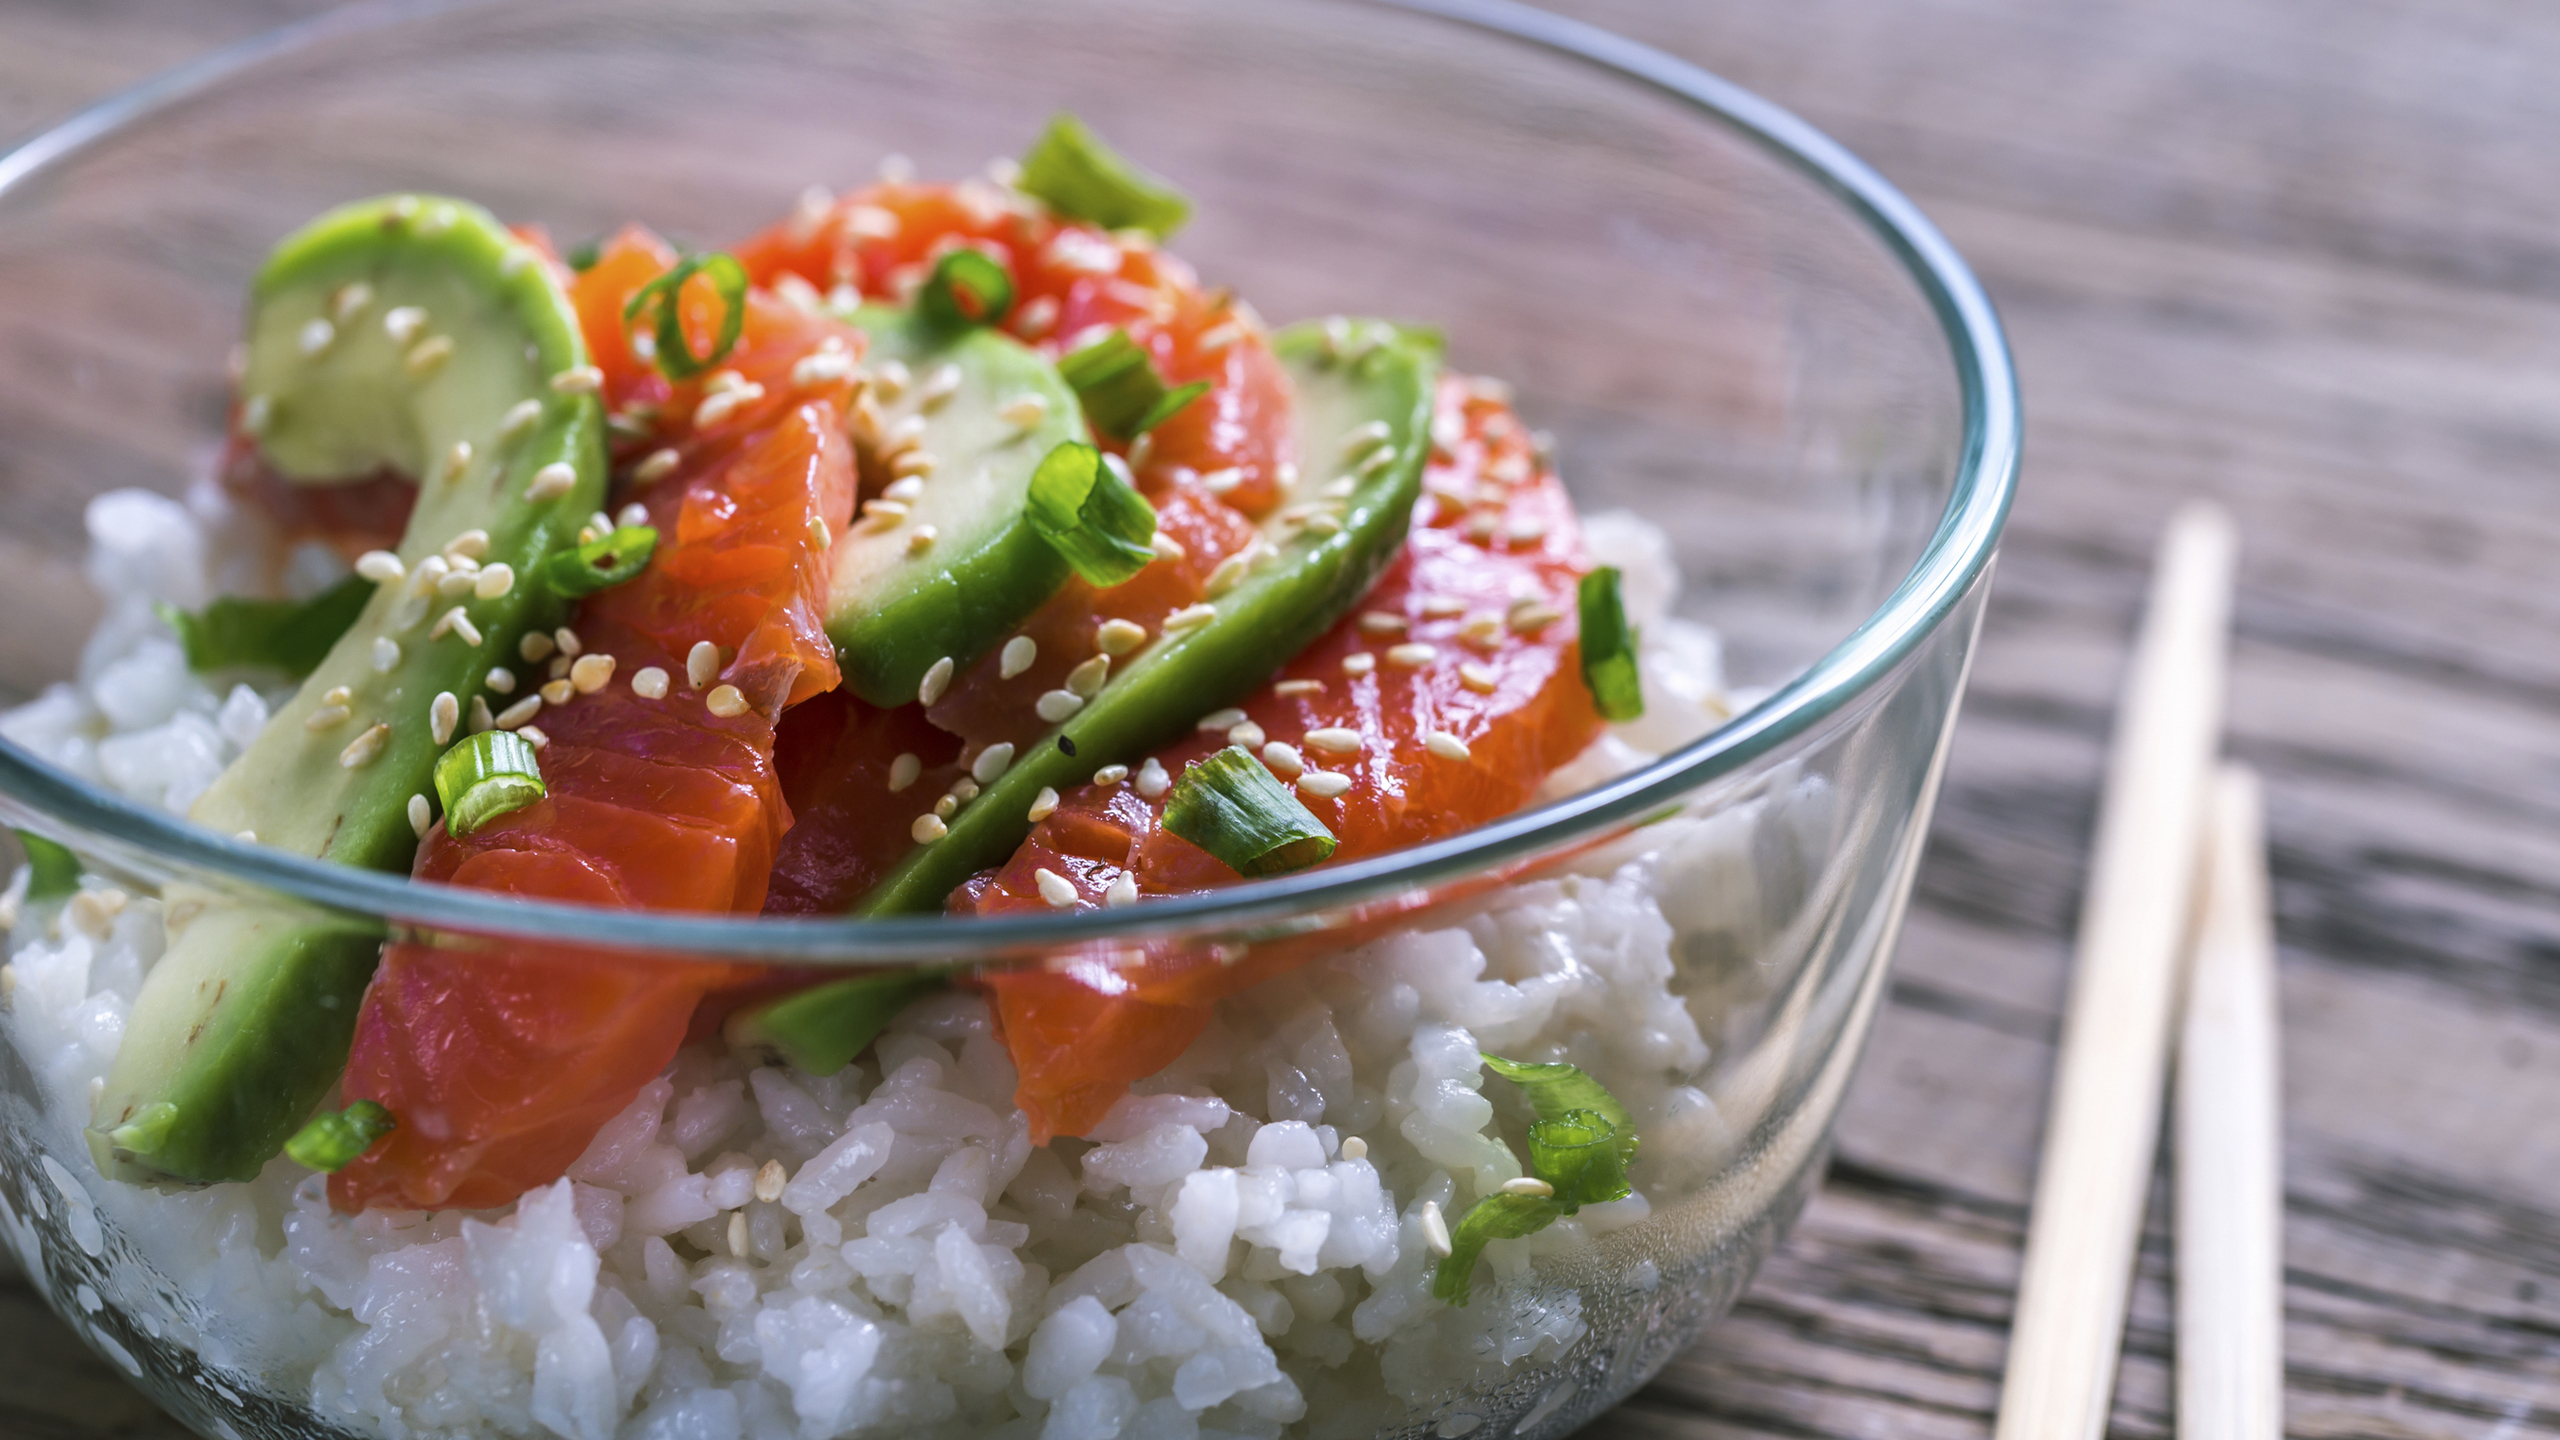 To Reduce RA Risk, Watch What You Eat